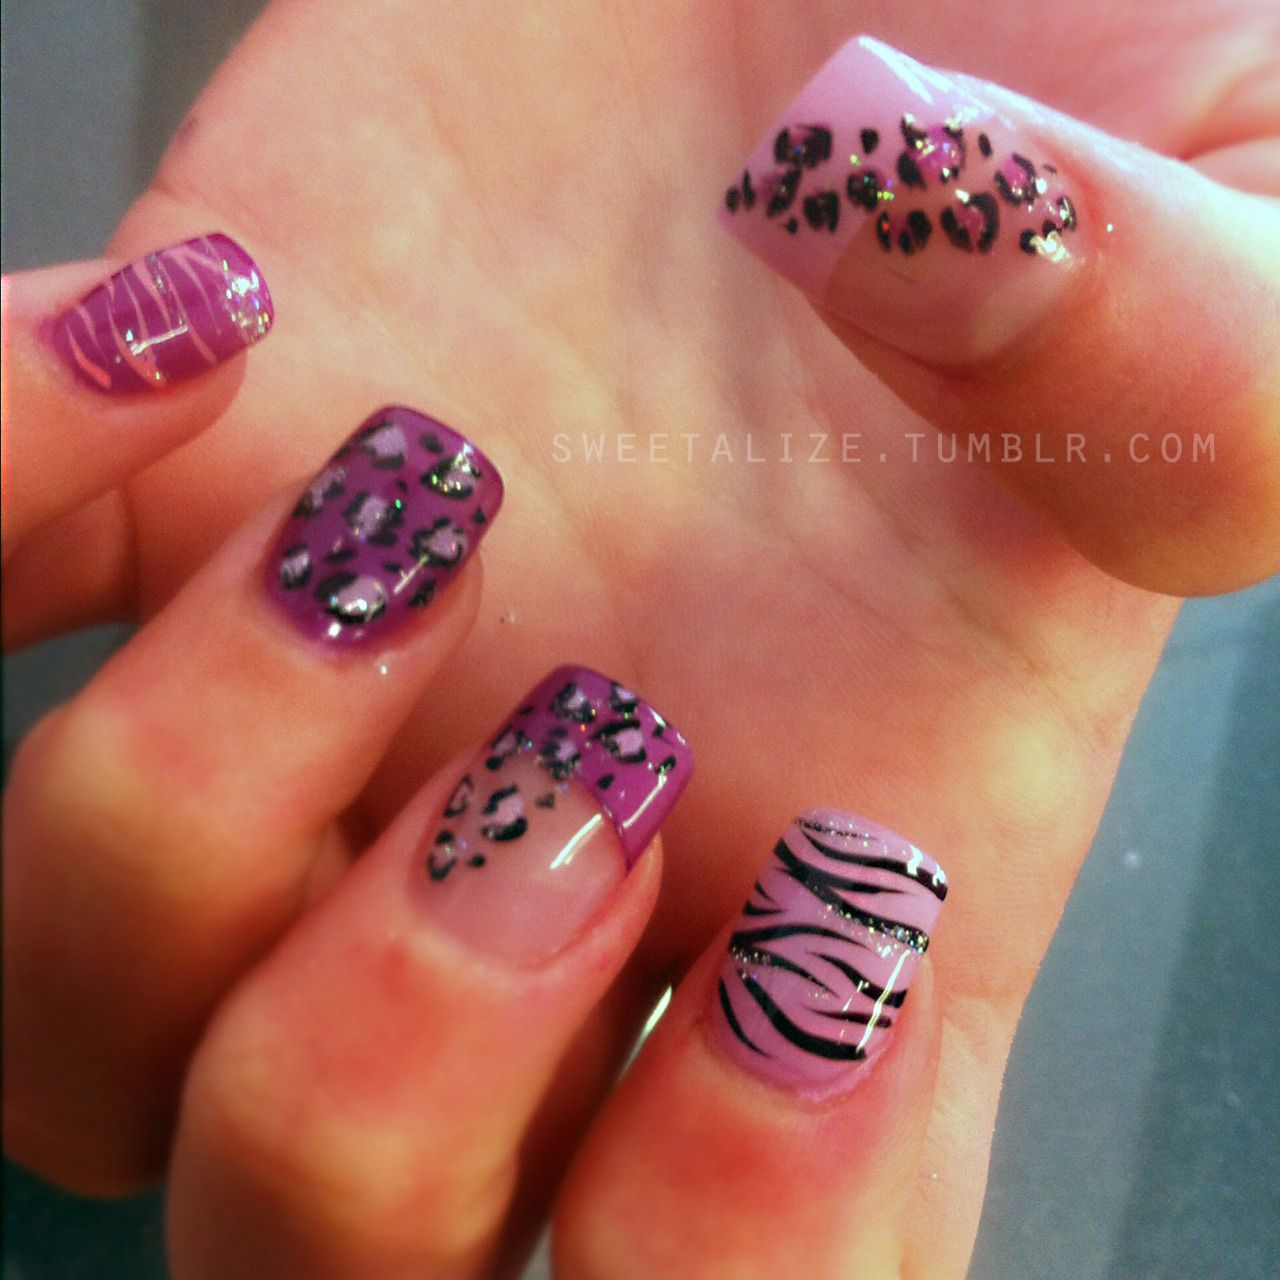 Zebra and Cheetah Nail Designs | tumblr_m1ny2aIVtG1qdudo5o1_r1_1280 ...